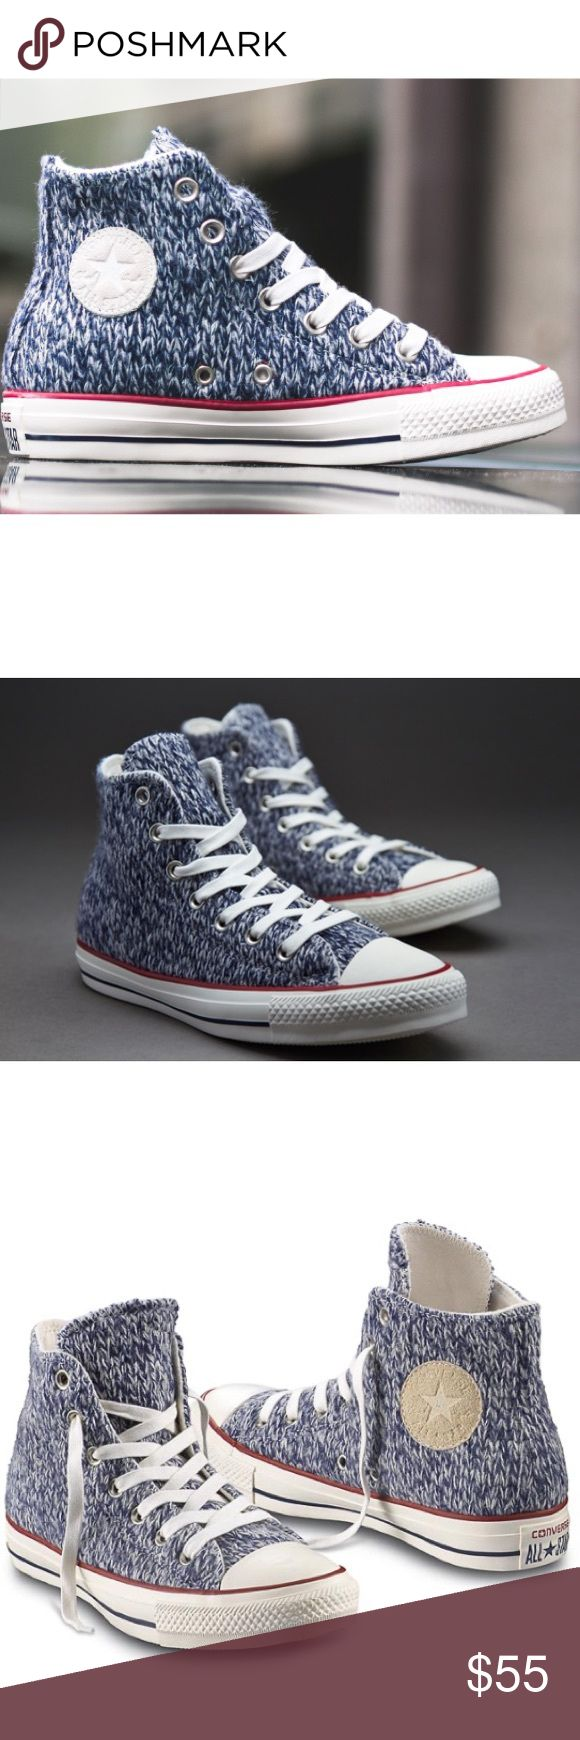 🎉FINAL SALE! CONVERSE WOMENS NAVY WHITE SIZE 8.5 Brand me without box Converse Shoes Sneakers